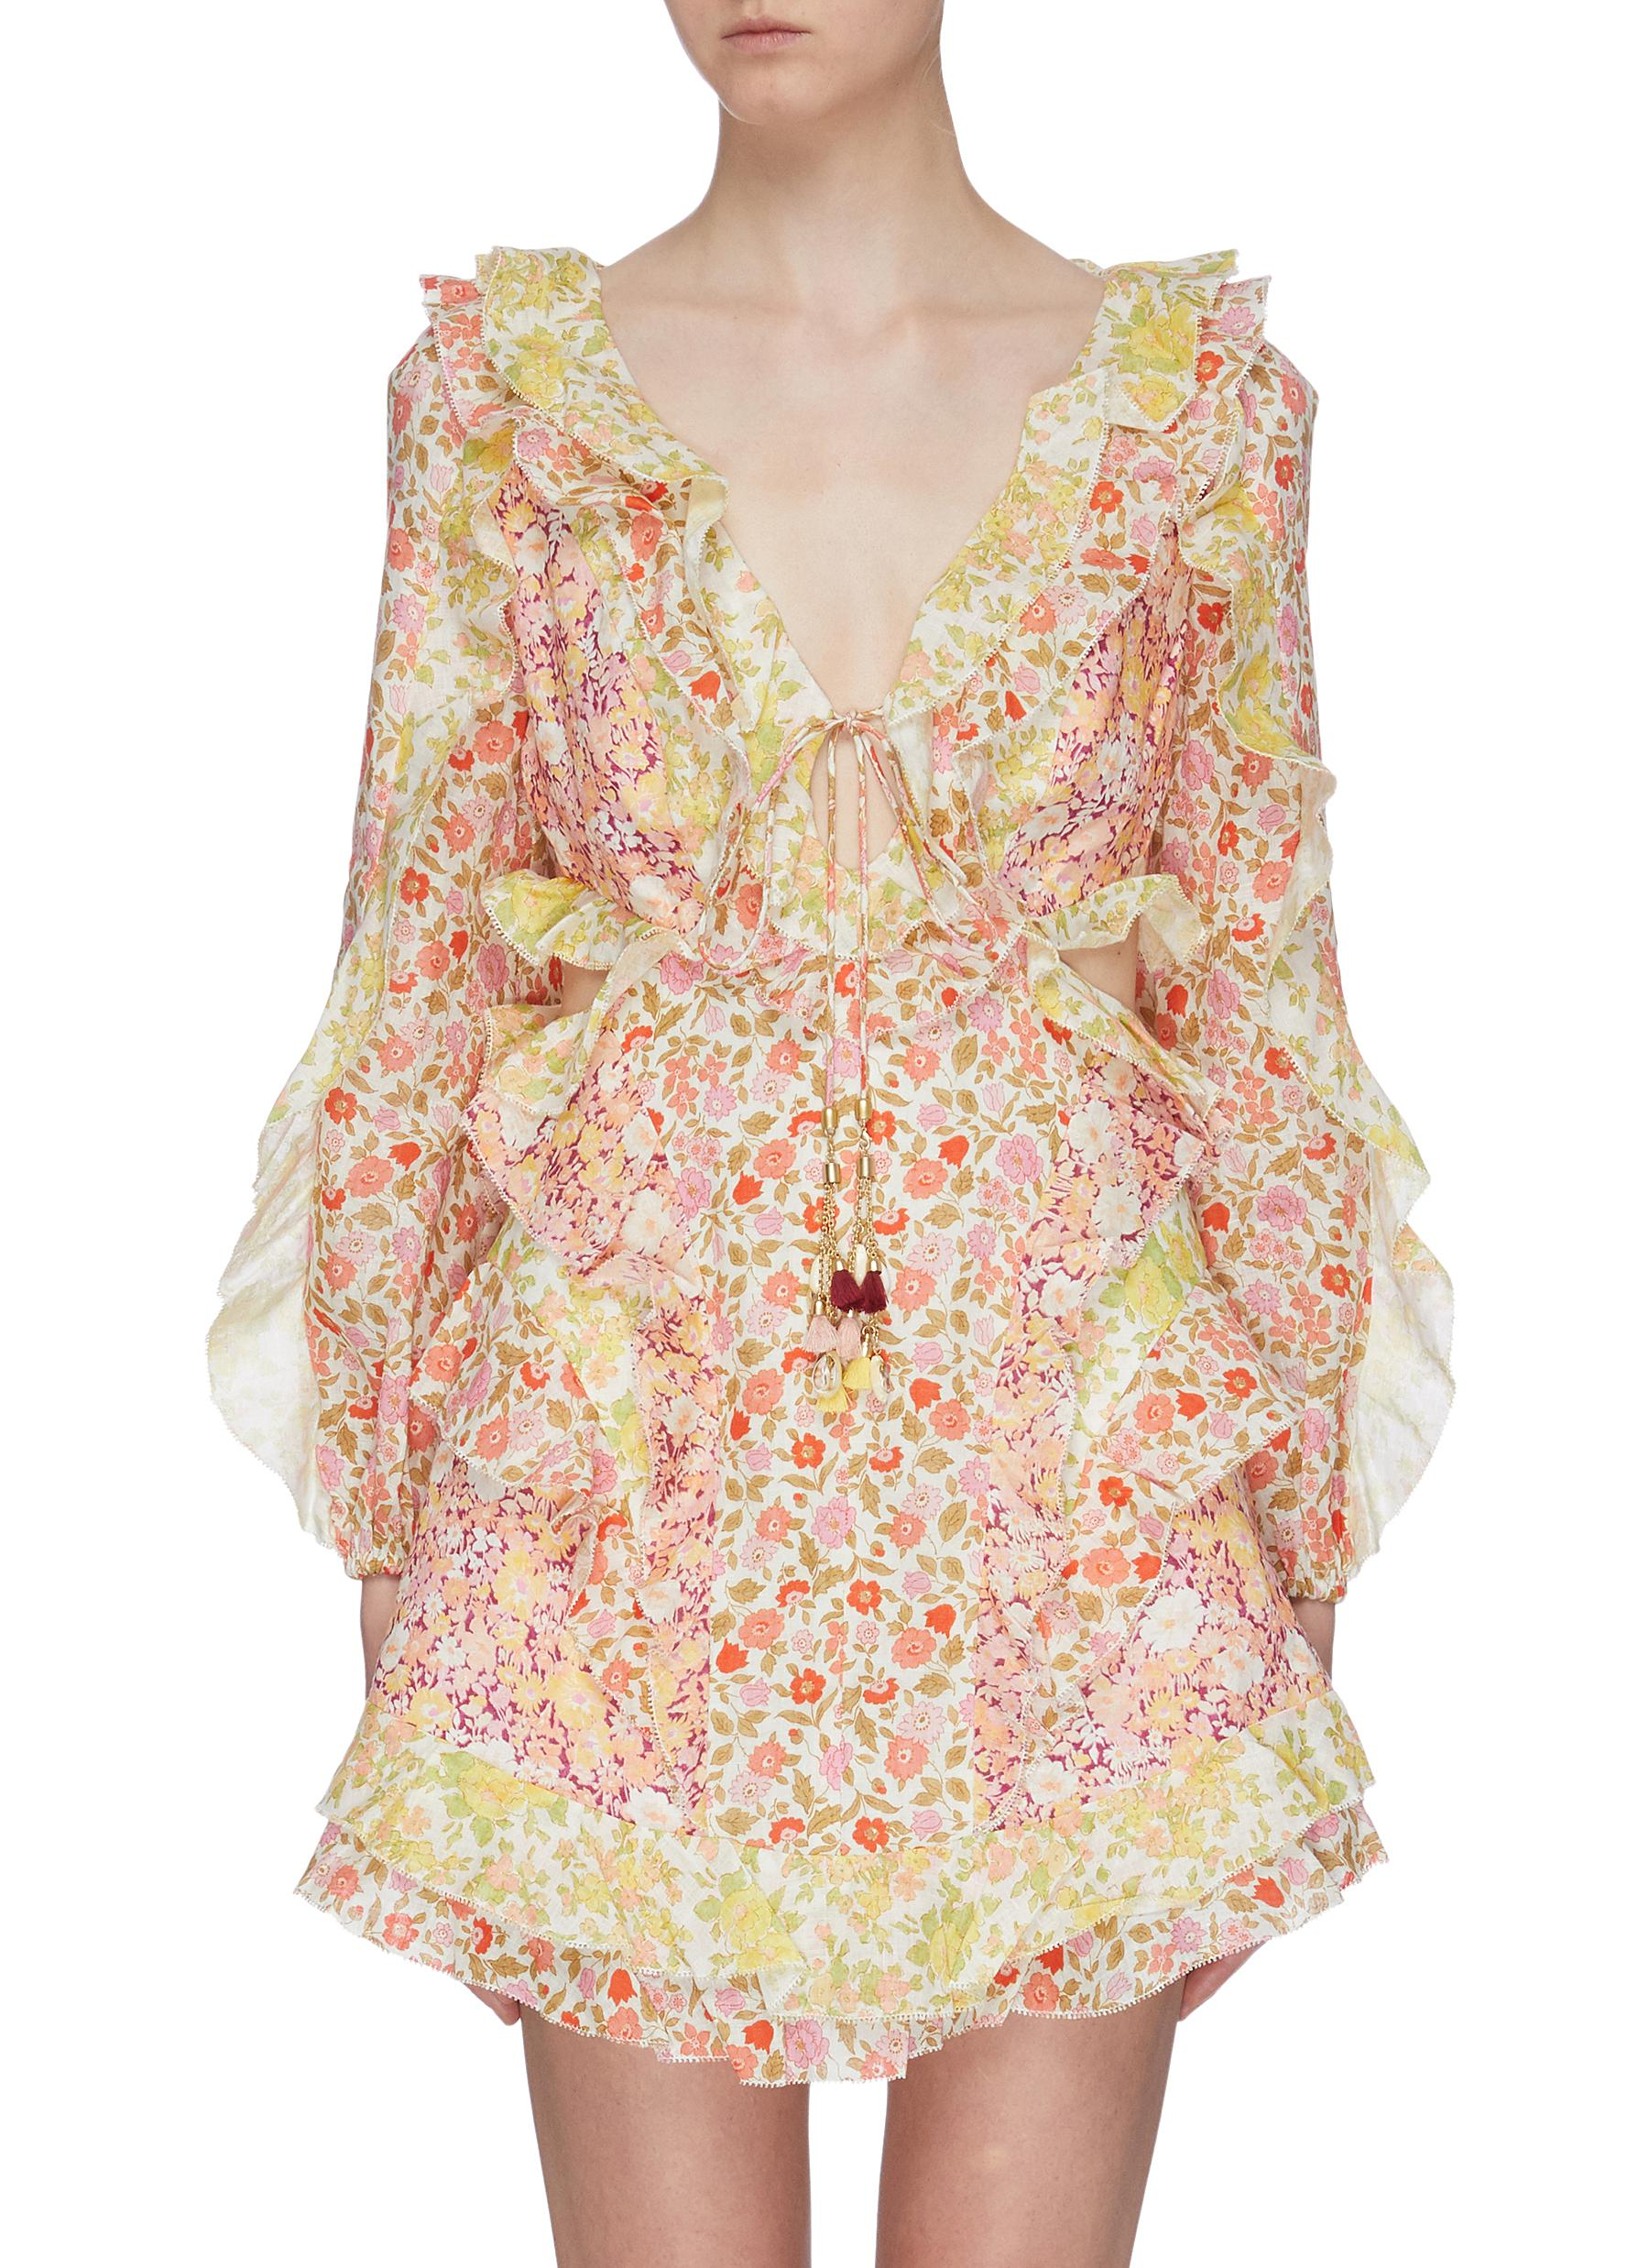 Goldie cutout side ruffle patchwork floral print linen dress by Zimmermann